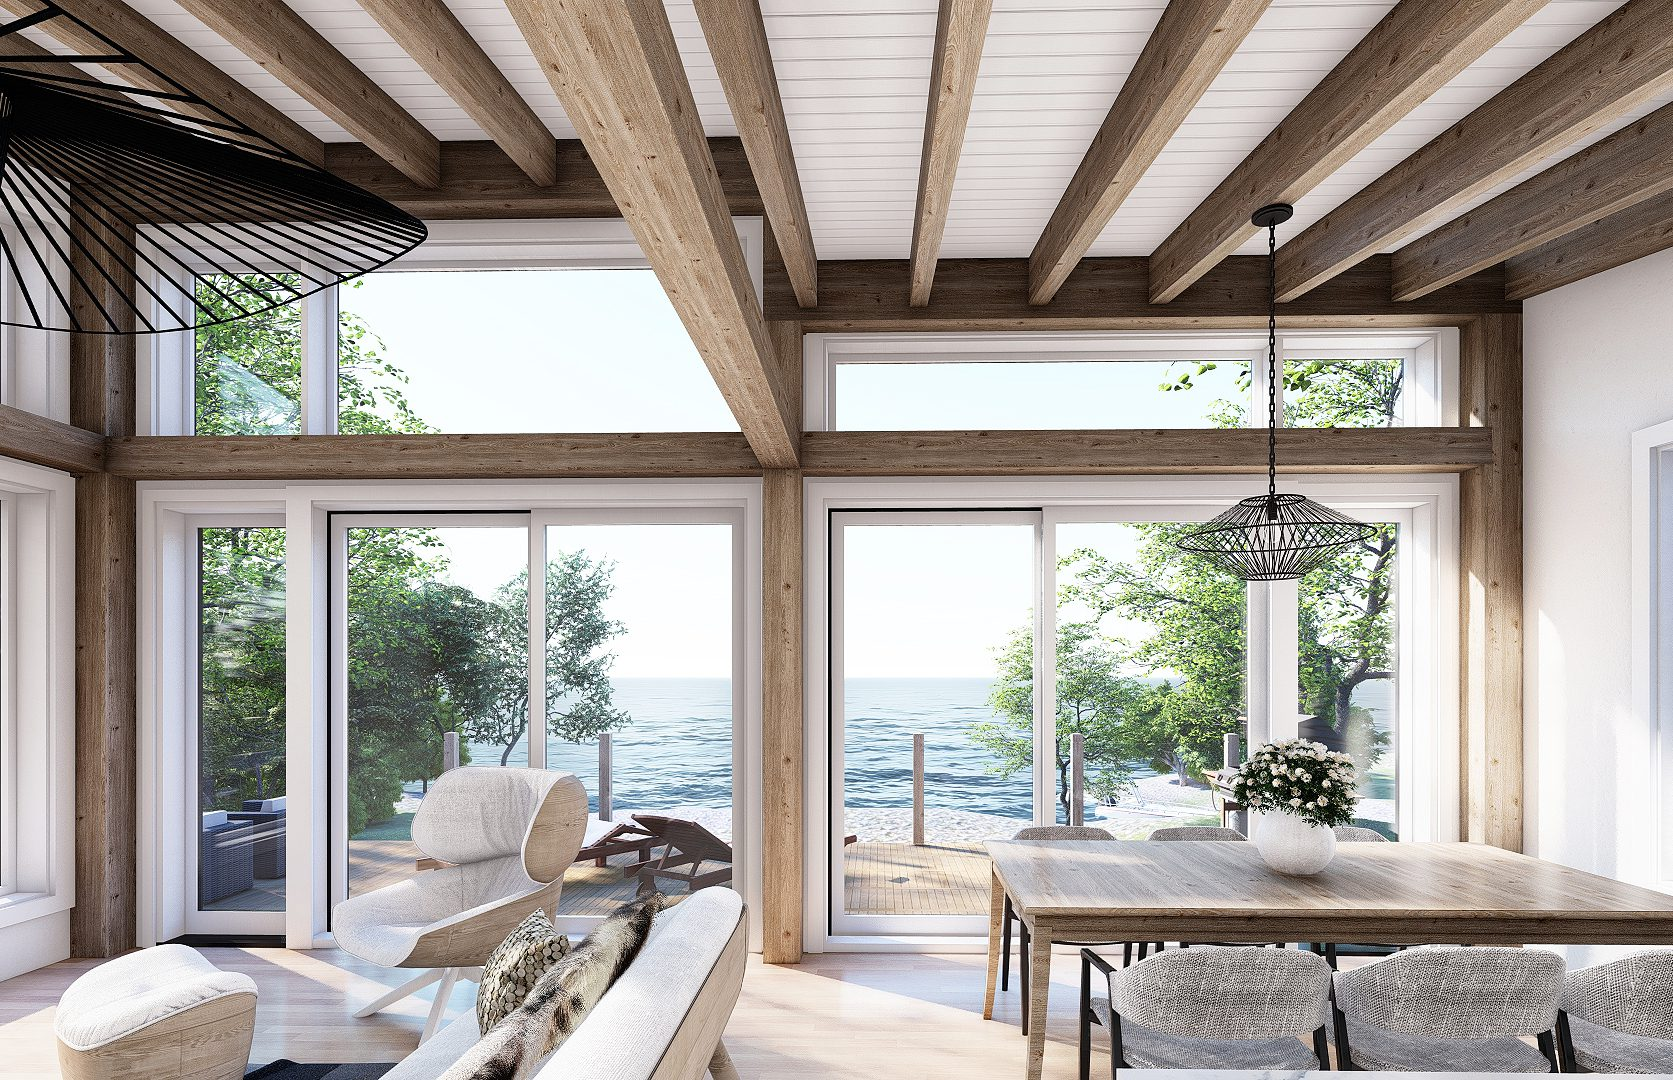 Normerica Timber Frames, House Plan, The Laurentian, Interior, Dining Room, Open Concept